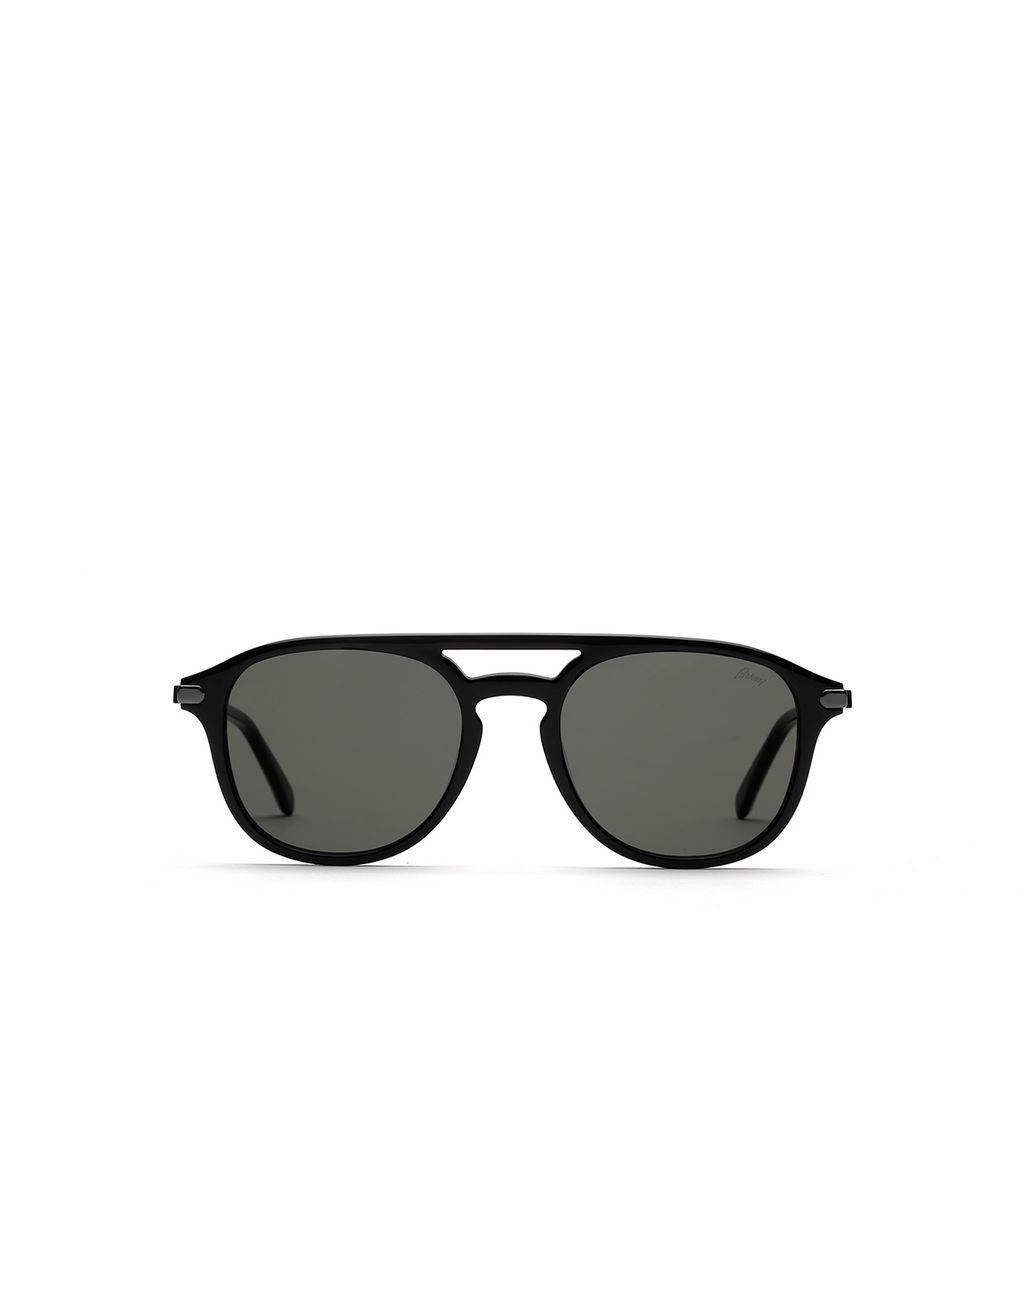 BRIONI Black Pantos Shape Sunglasses With Grey Lenses Sunglasses Man f